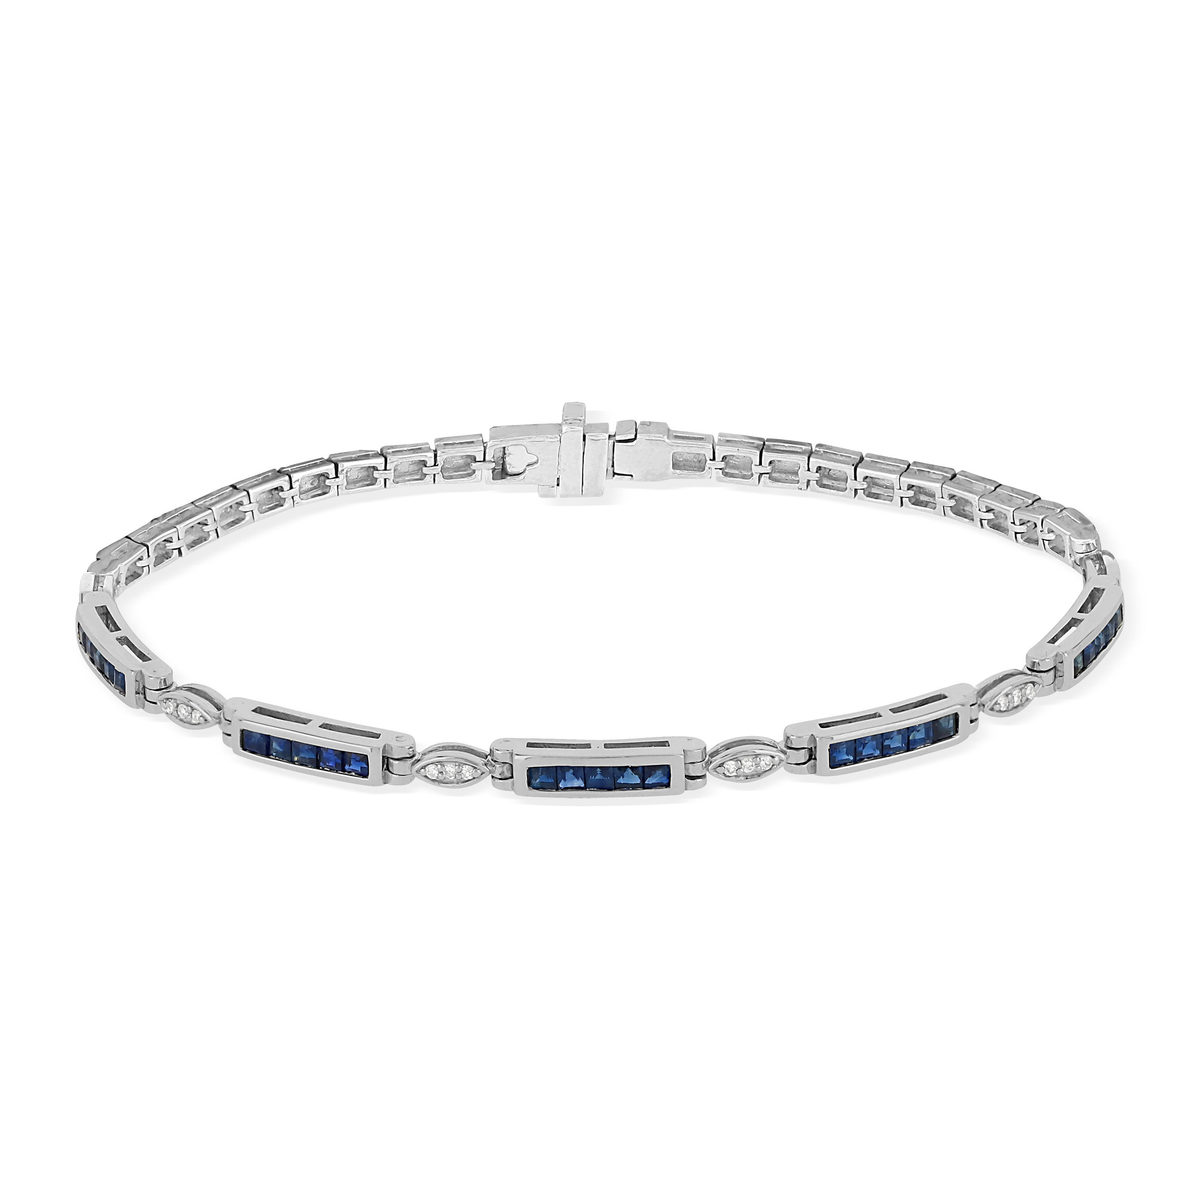 Bracelet or blanc 750 saphirs diamants 18 cm - vue 2